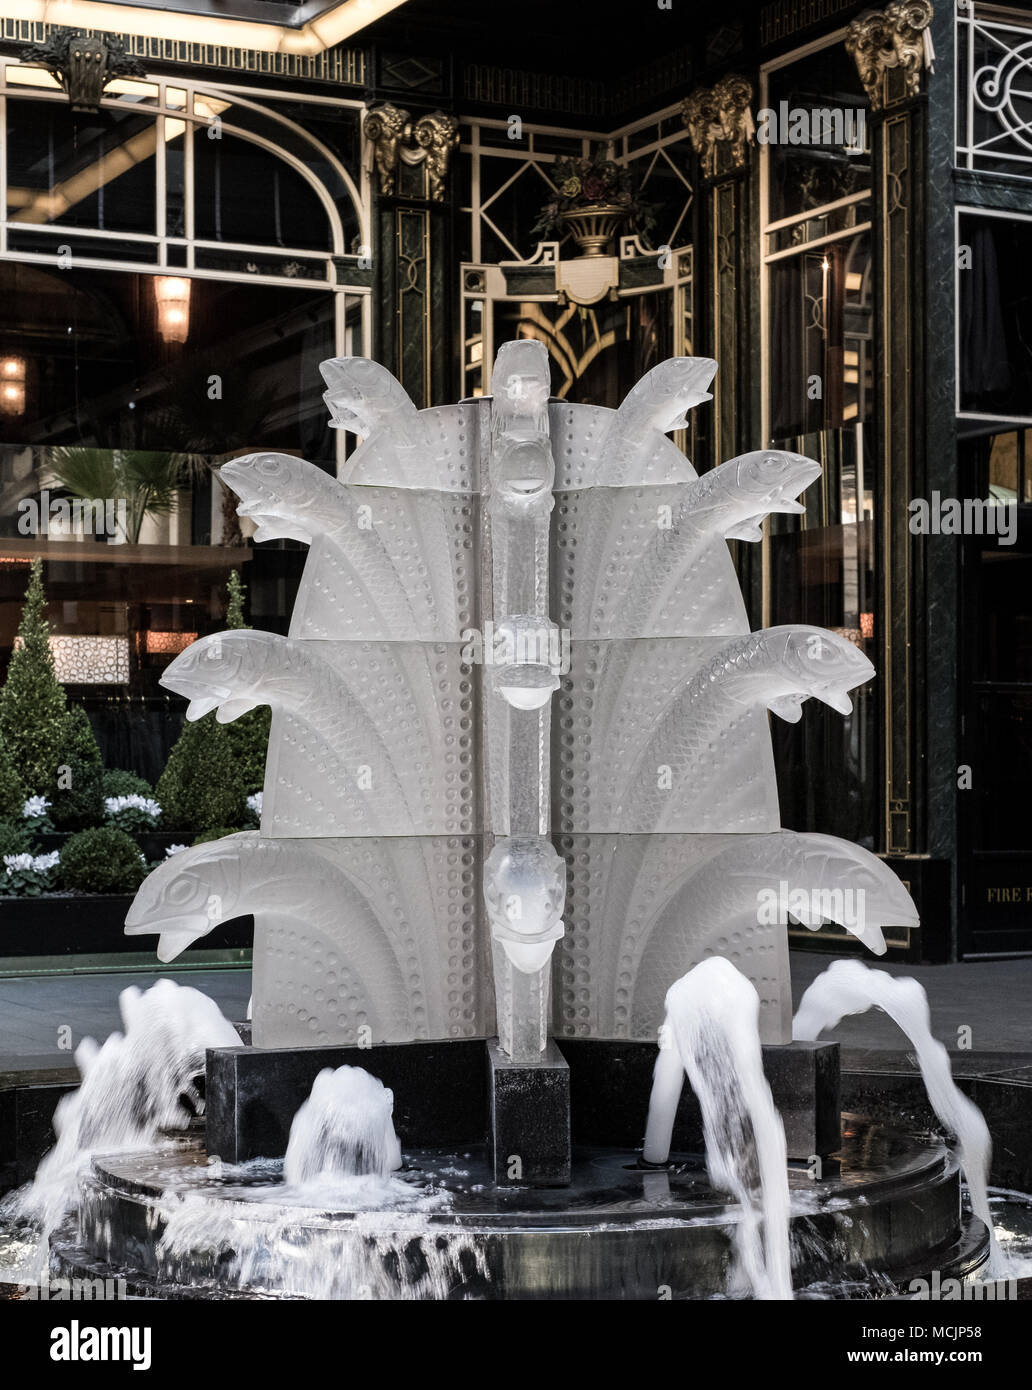 Close up of glass fountain with fish, located outside The Savoy Hotel, off The Strand, London, UK. Fountain designed by French glassmaker Lalique. - Stock Image